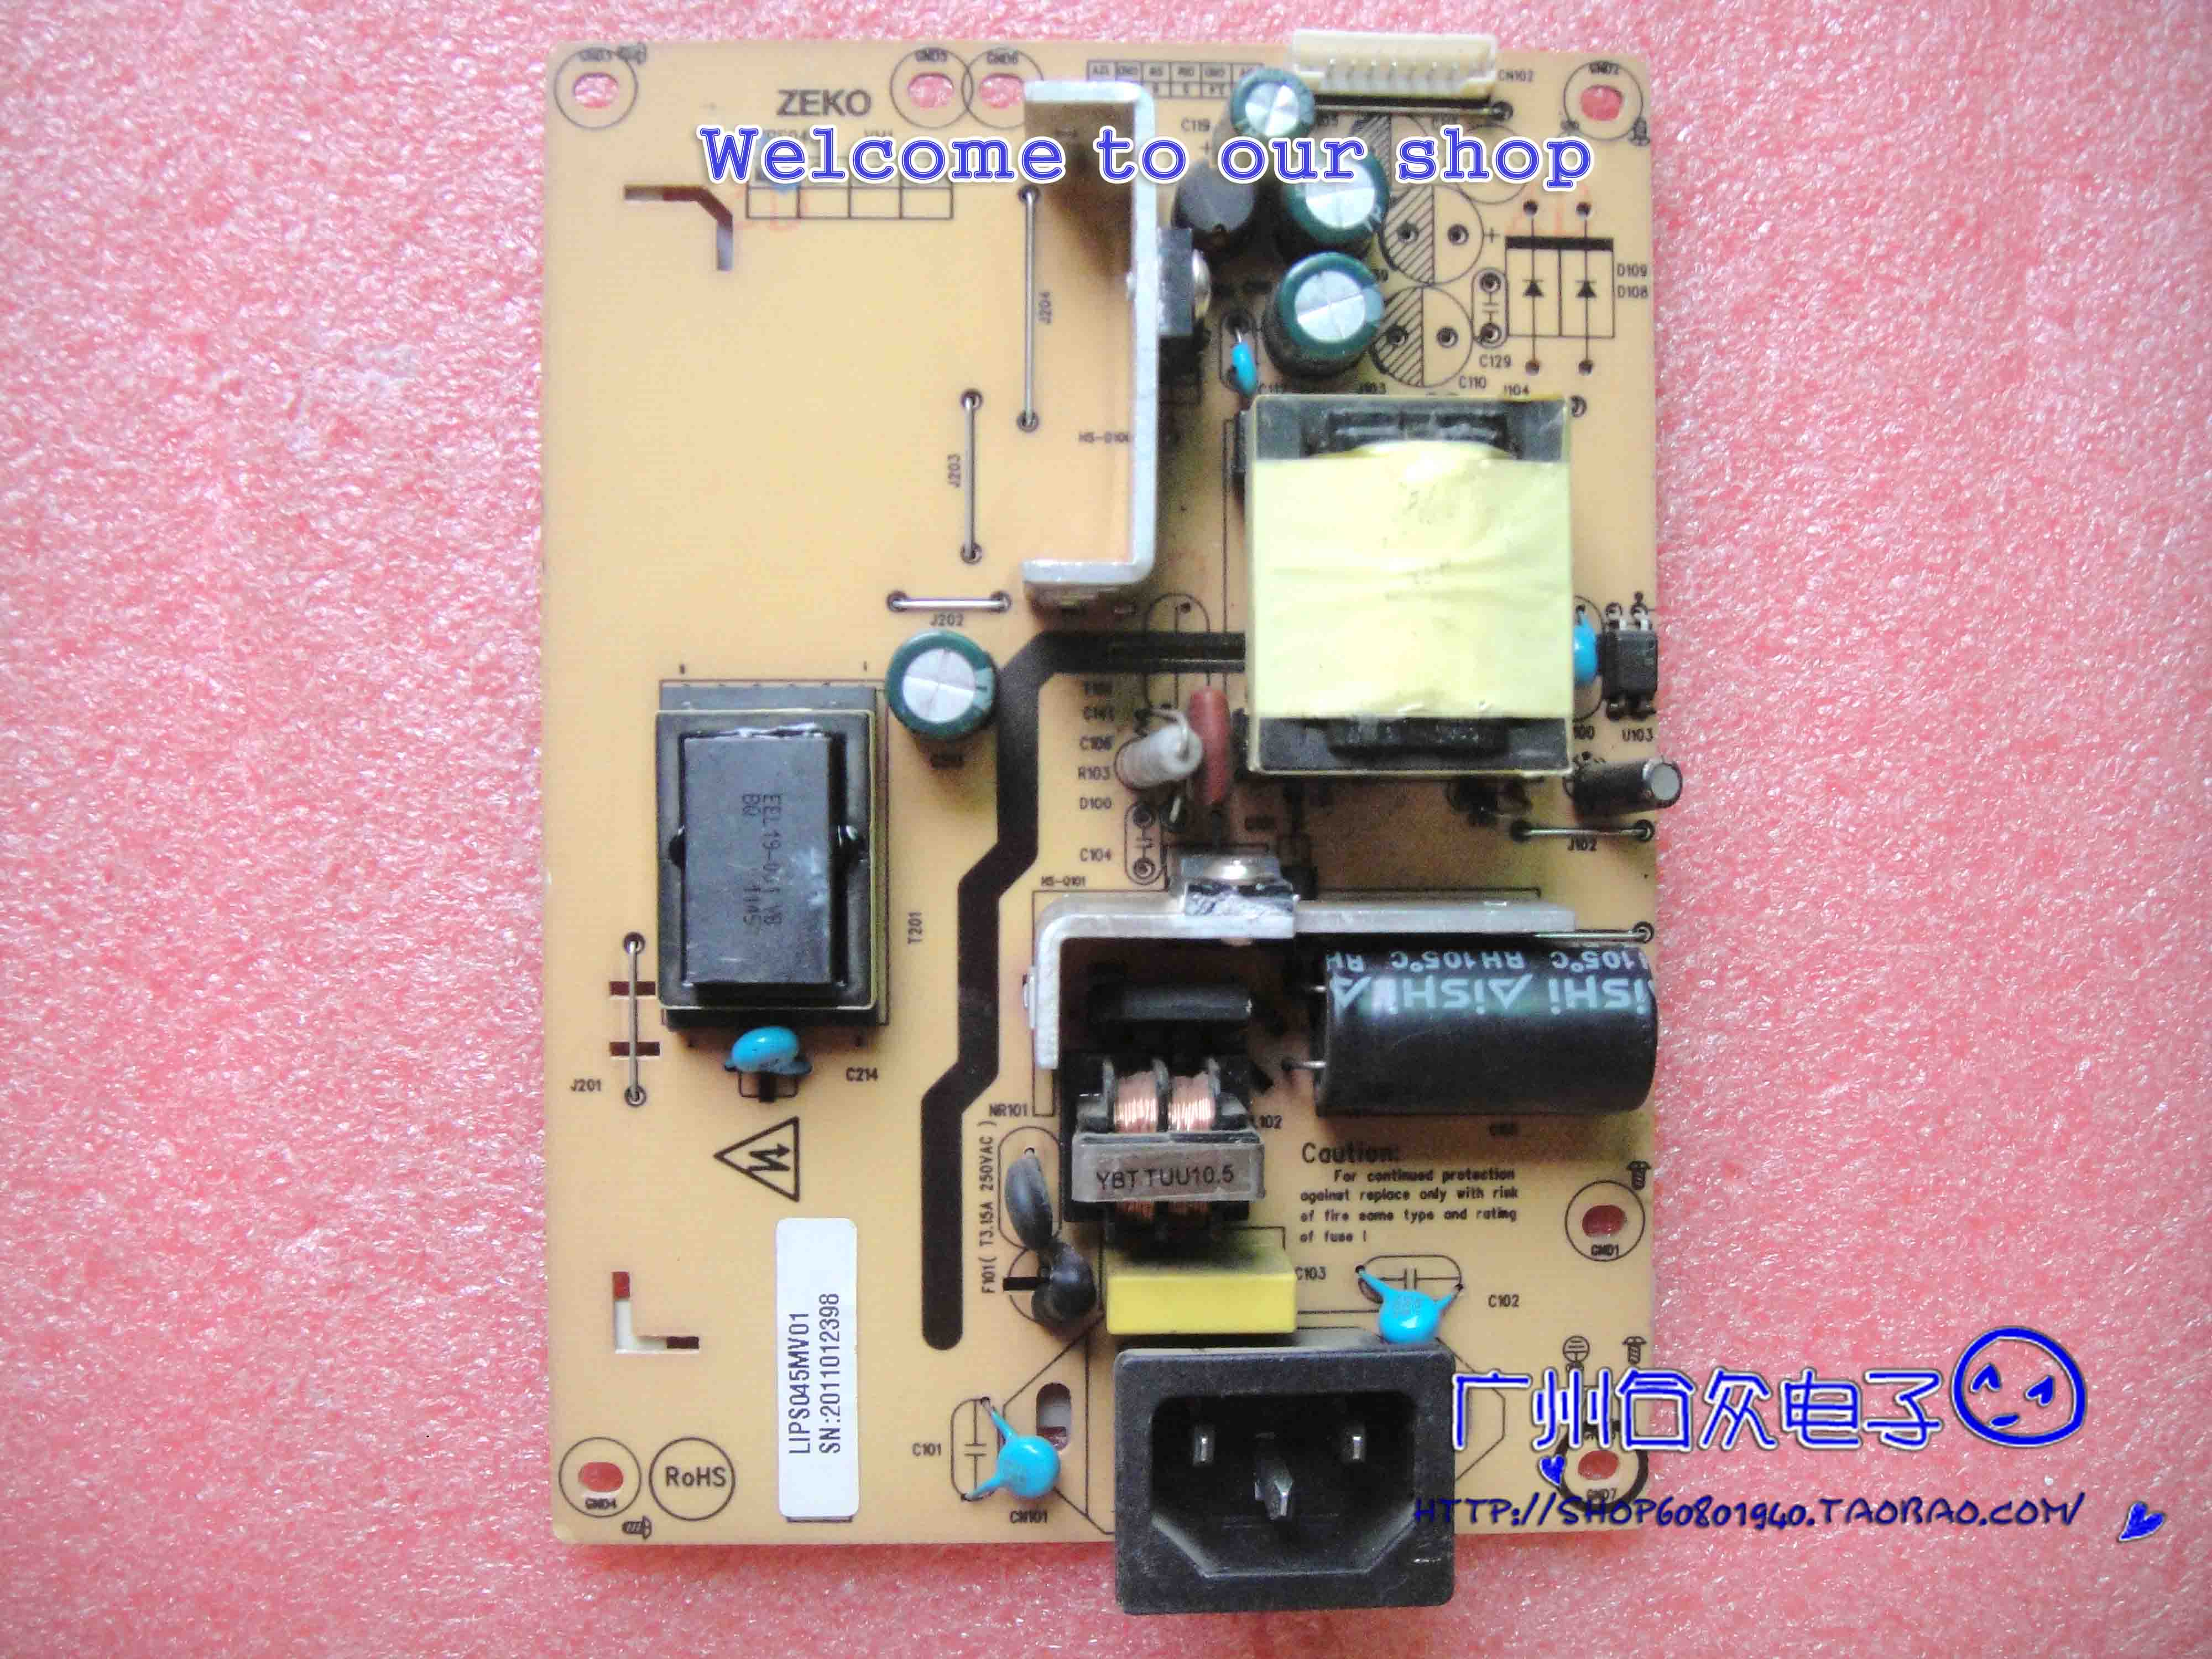 Malata LCD TV general purpose power supply panel with high voltage board LIPS045BS10